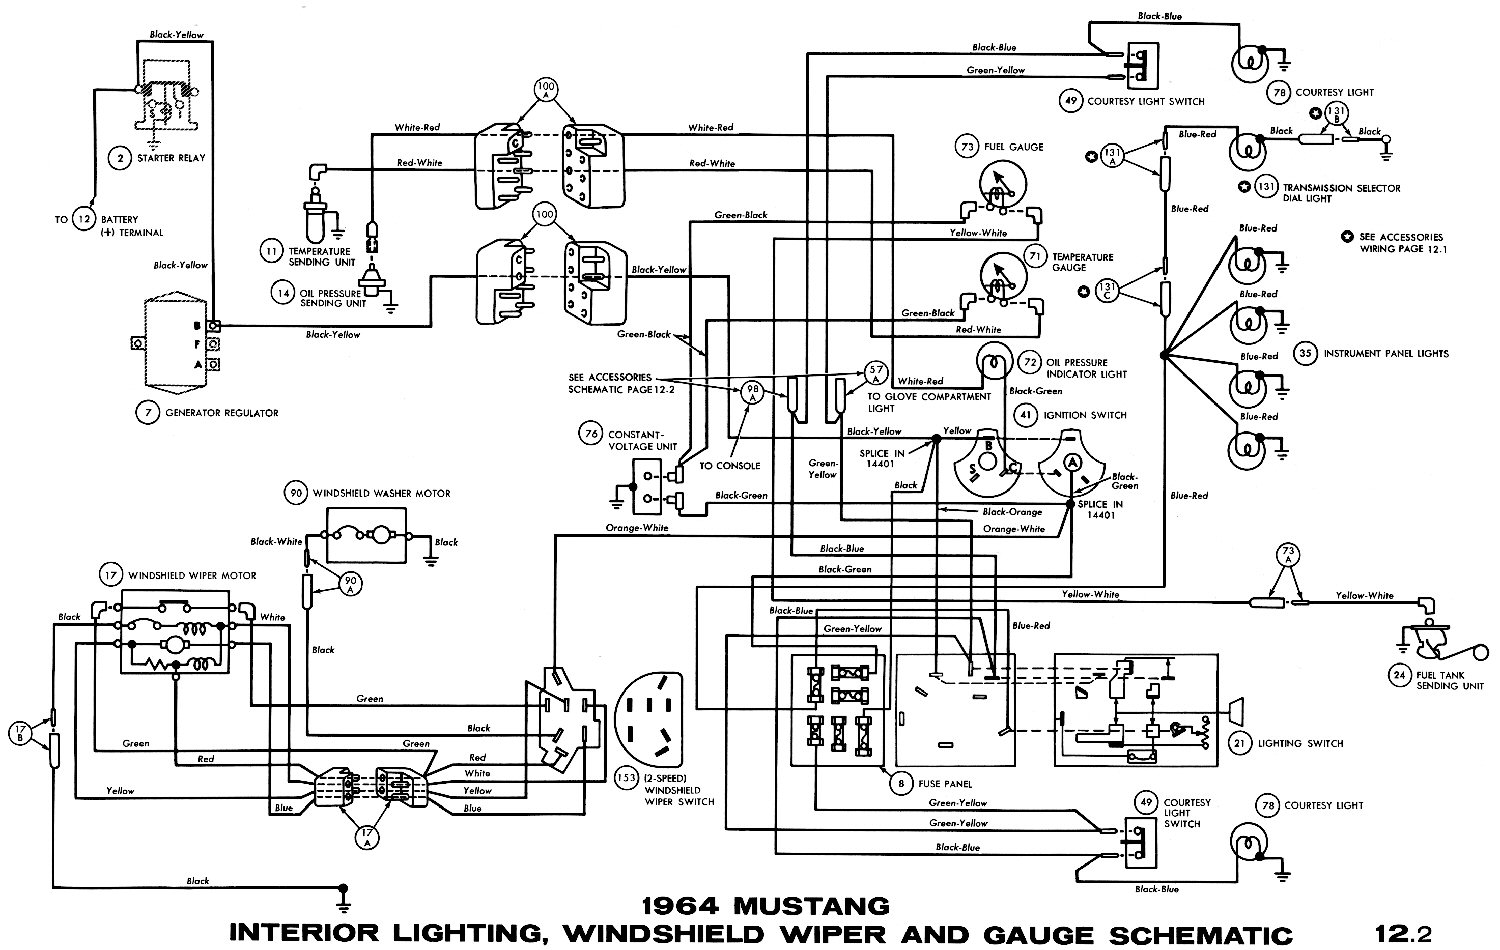 1964k 66 mustang wiring diagram online 65 ford mustang wiring diagram 1965 ford mustang wiring diagrams at arjmand.co